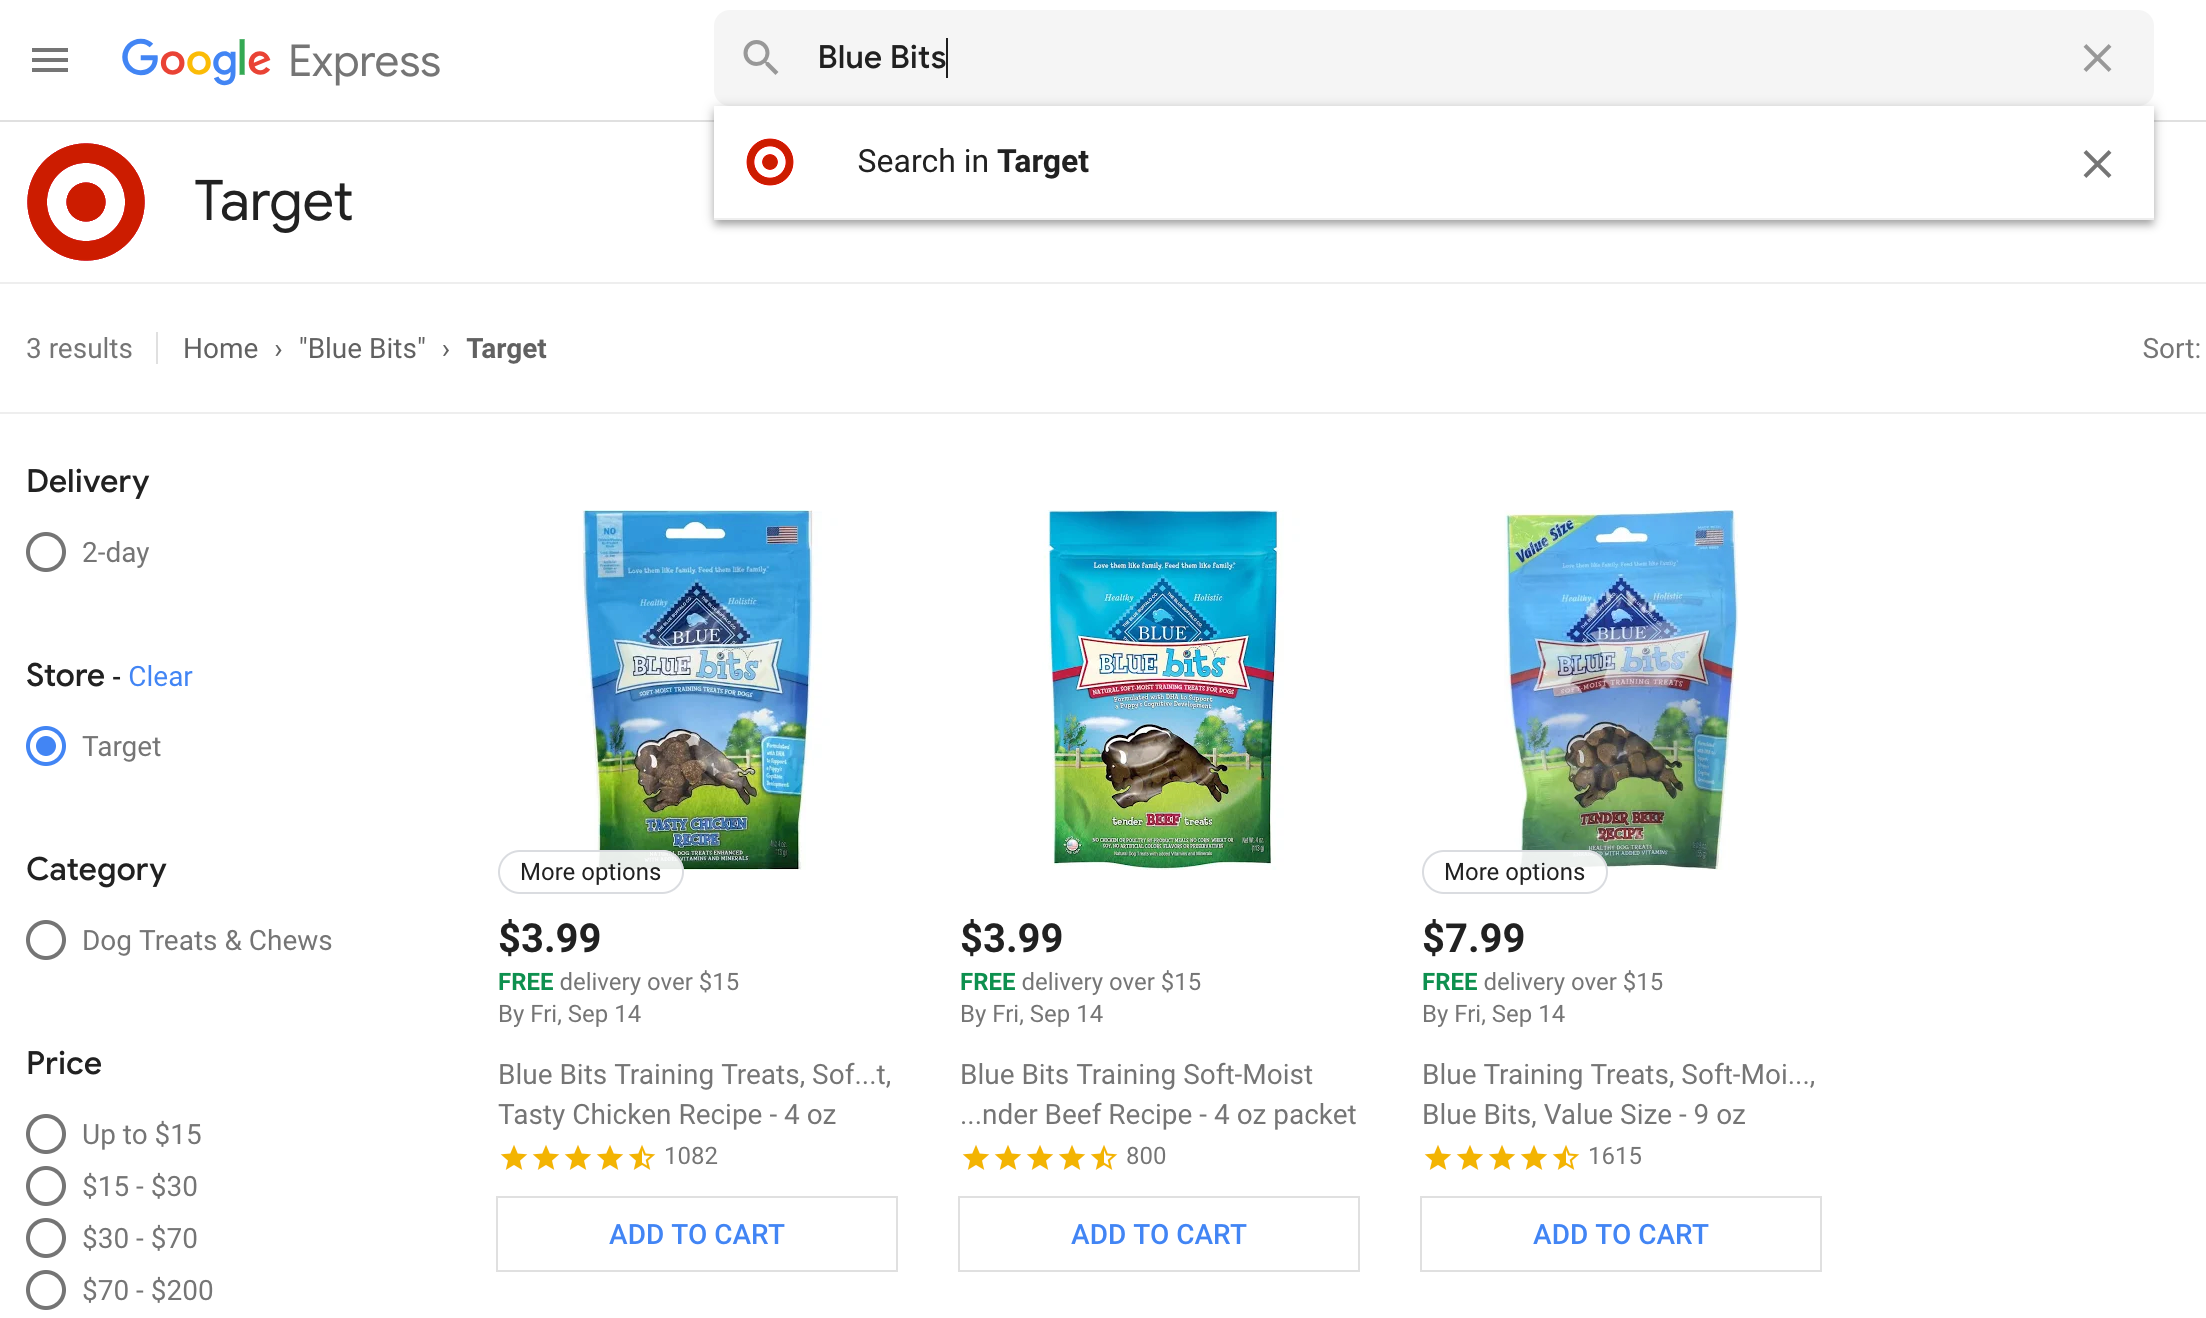 Google Express Search Experience